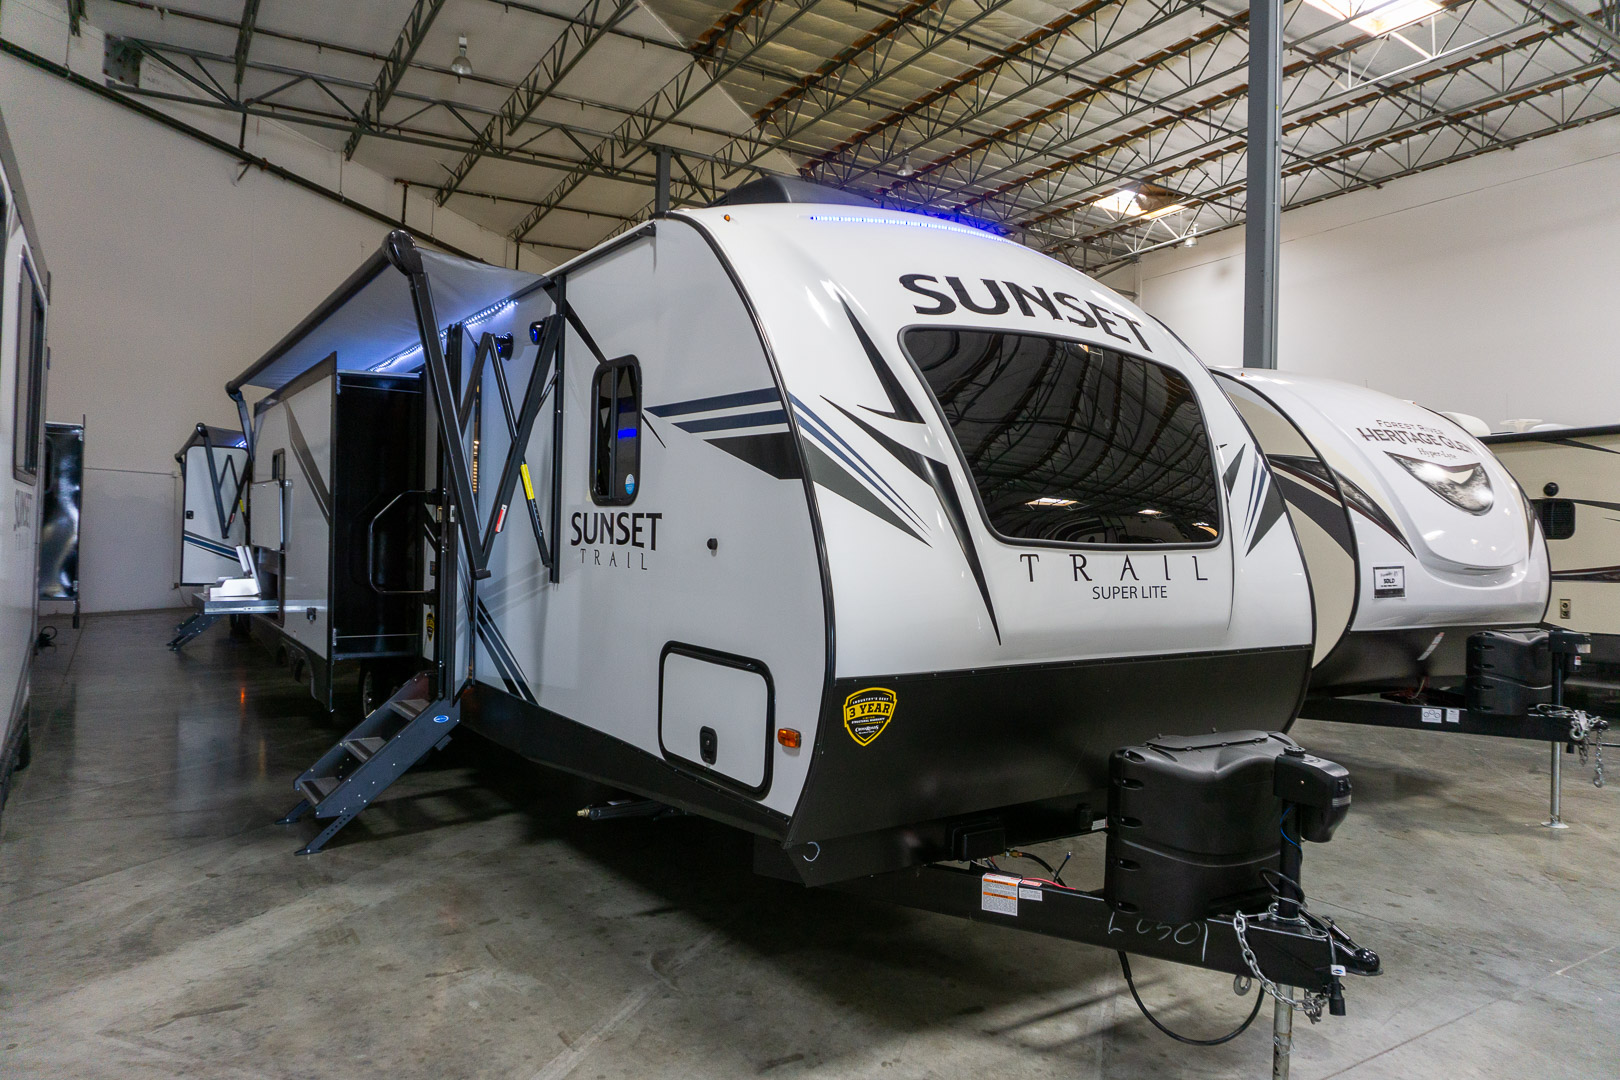 2020 CROSSROADS RV SUNSET TRAIL SUPER LITE SS285CK